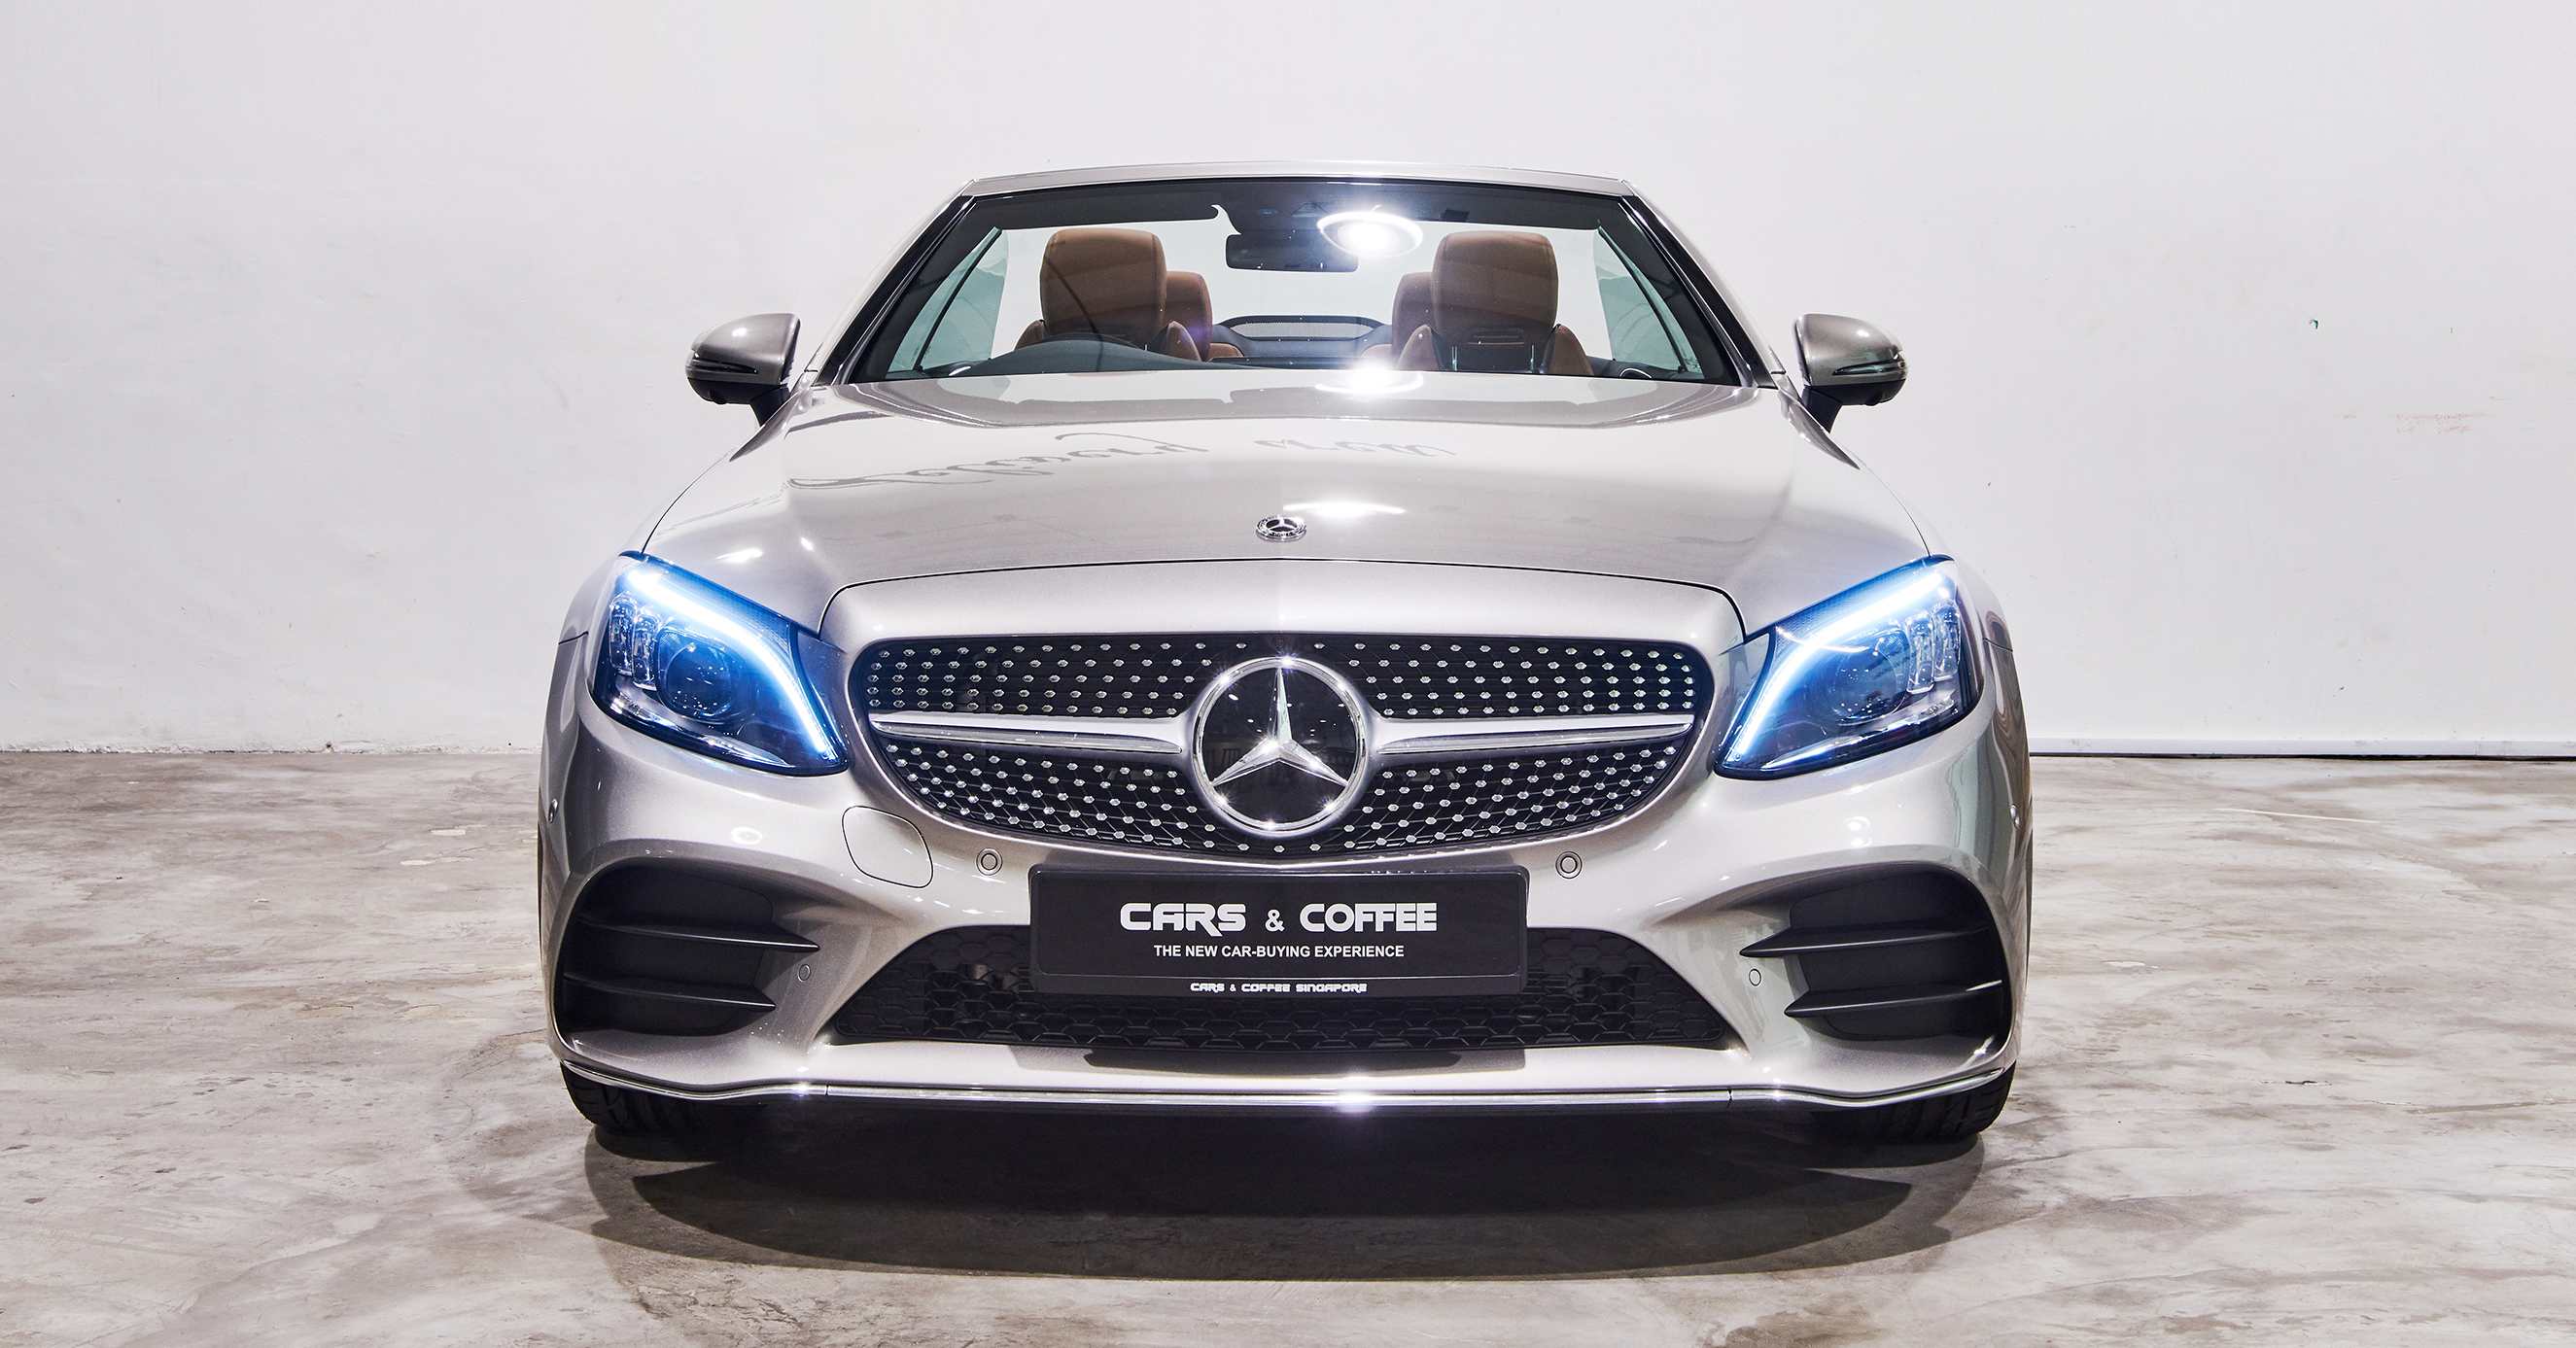 Beyond a seasonable doubt. The New C-Class Cabriolet shows an ever-fresh face to the sun. There's room for four to take in the sky or ride in coupelike comfort under the rich fabric top. And everywhere you look or touch, you feel a unique heritage of motoring into tomorrow.